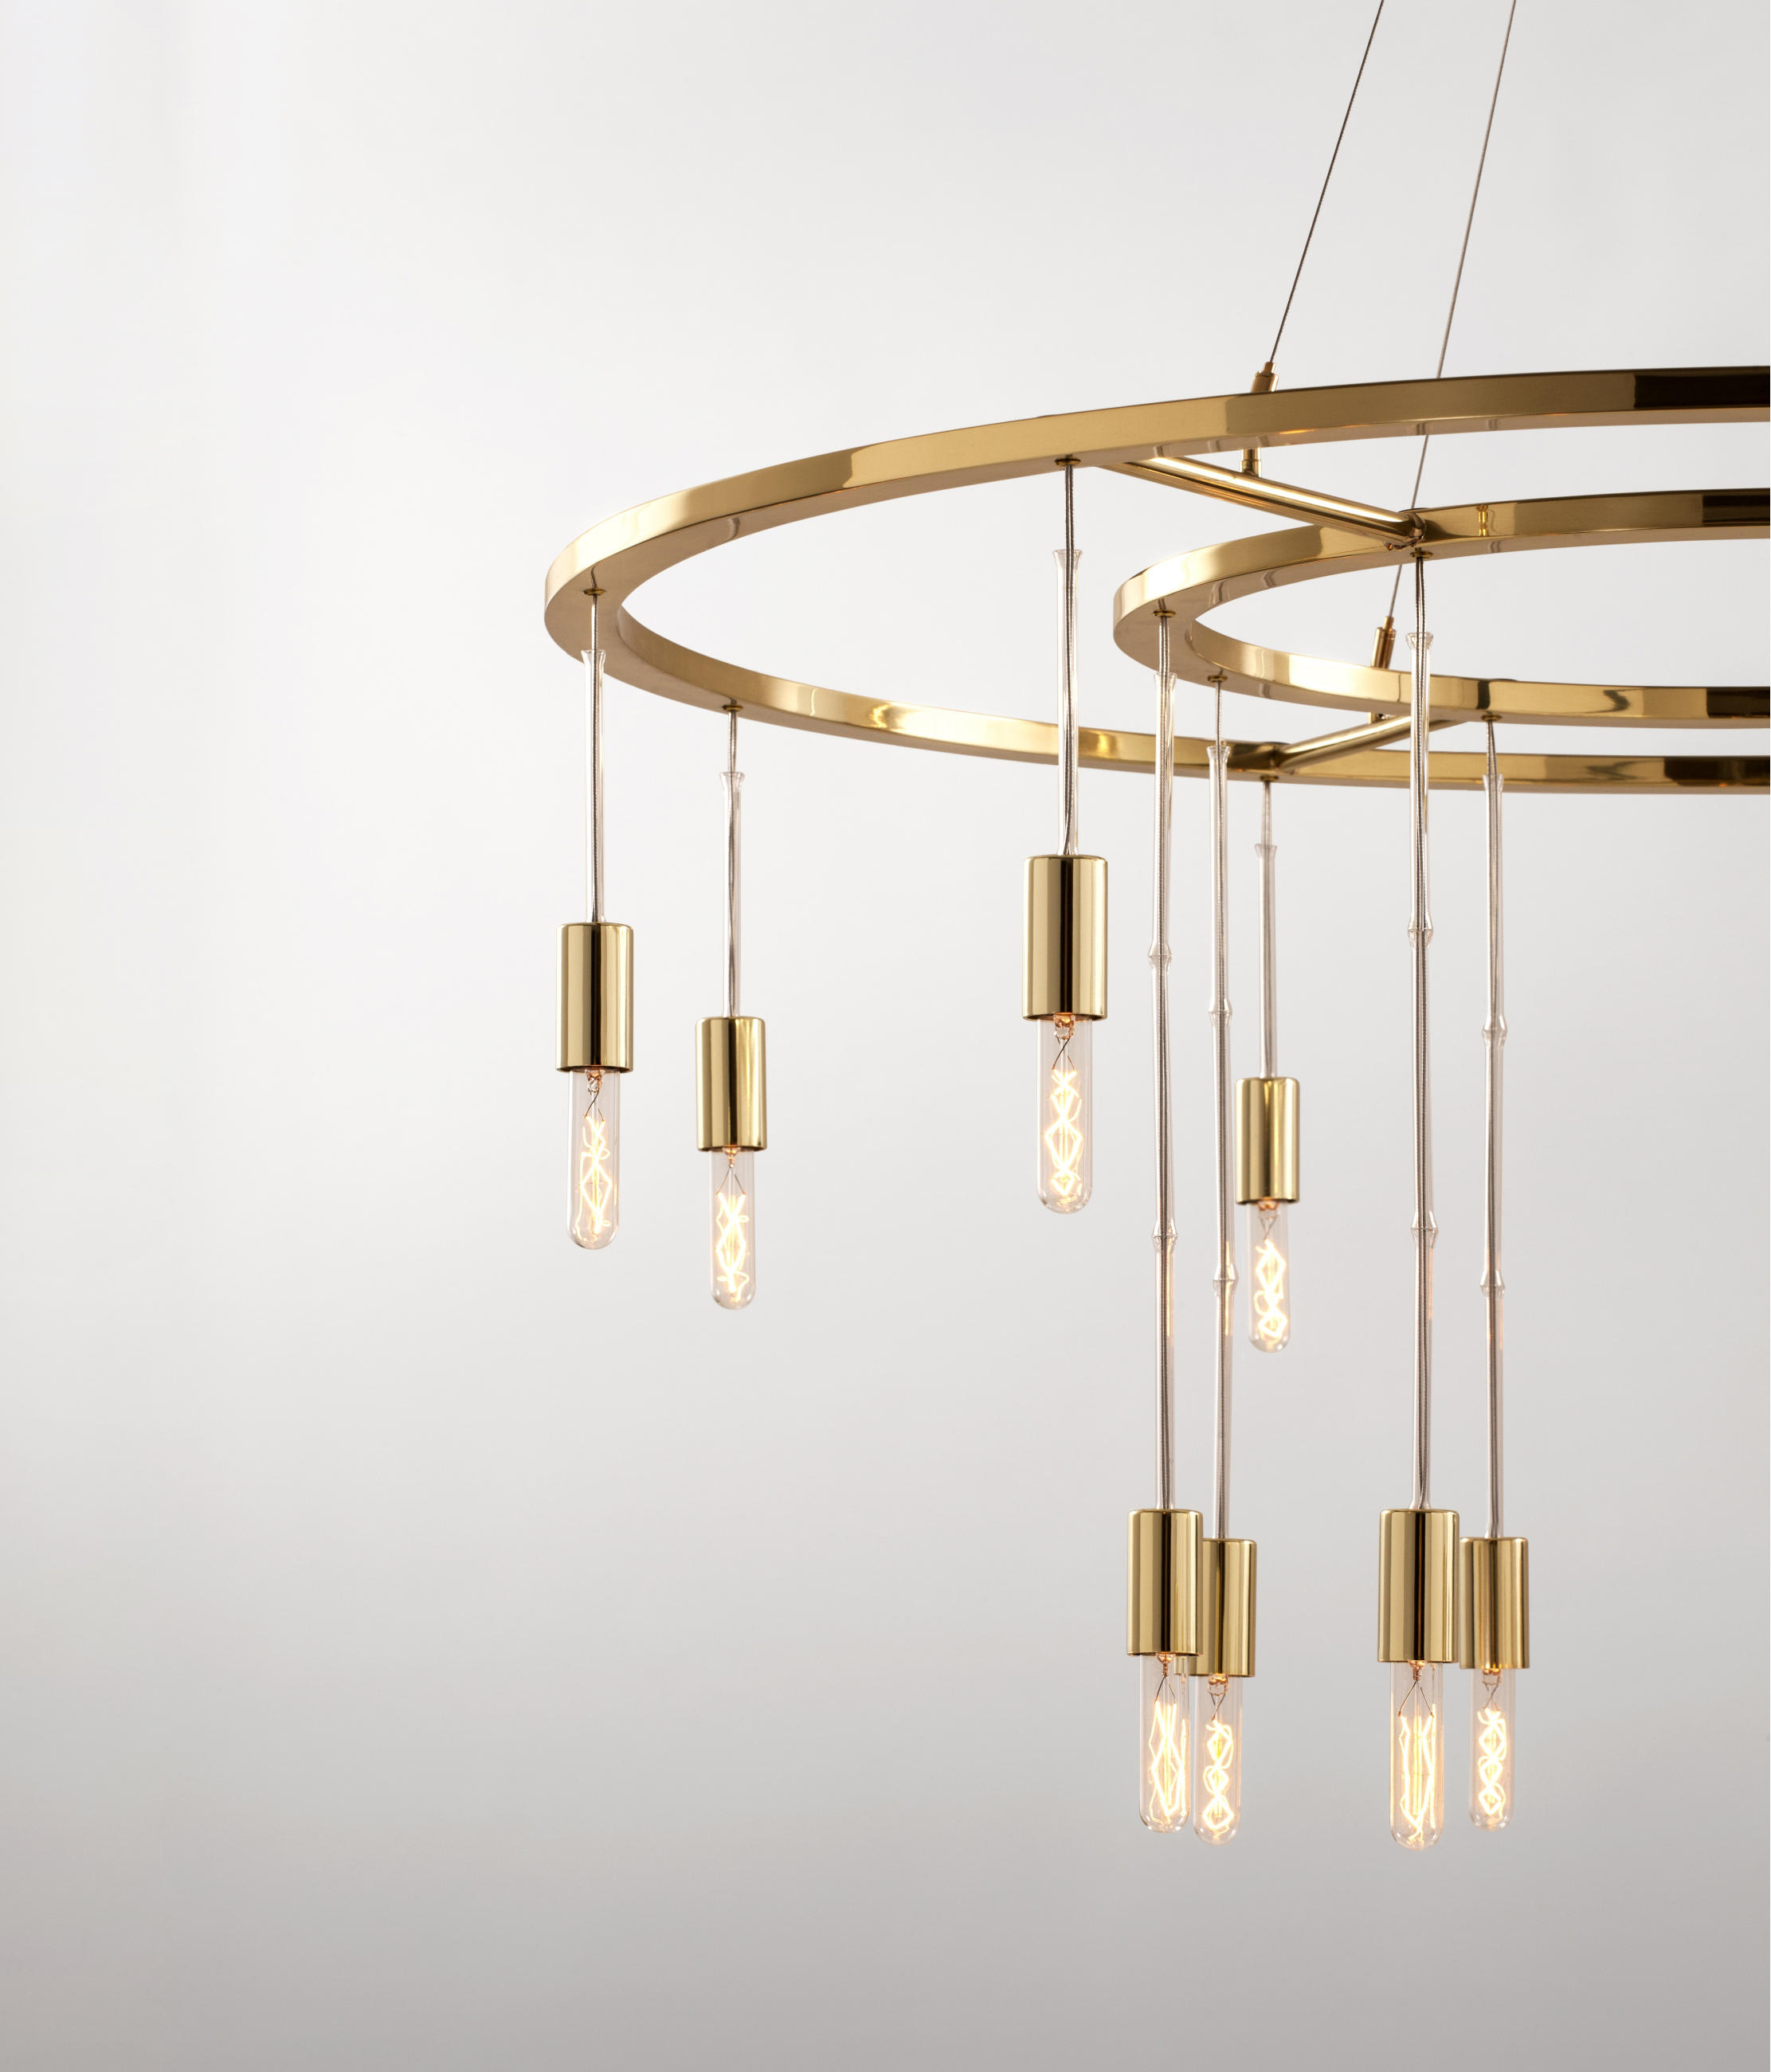 drum closdurocnoir pendant small simple chandeliers com chandelier decor prepossessing ideas